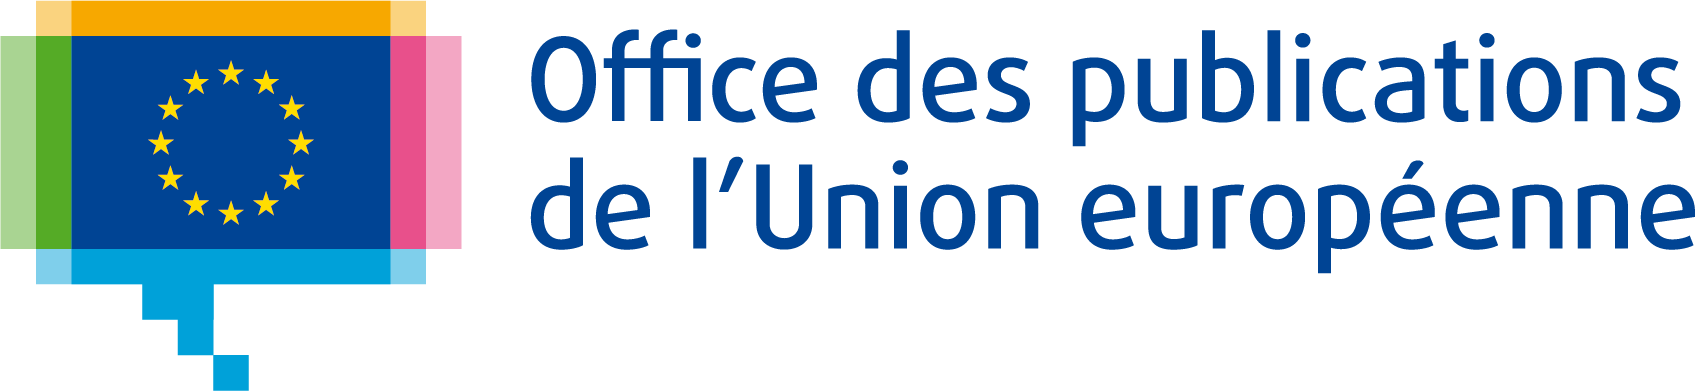 Photo of Office des publications de l'Union européenne